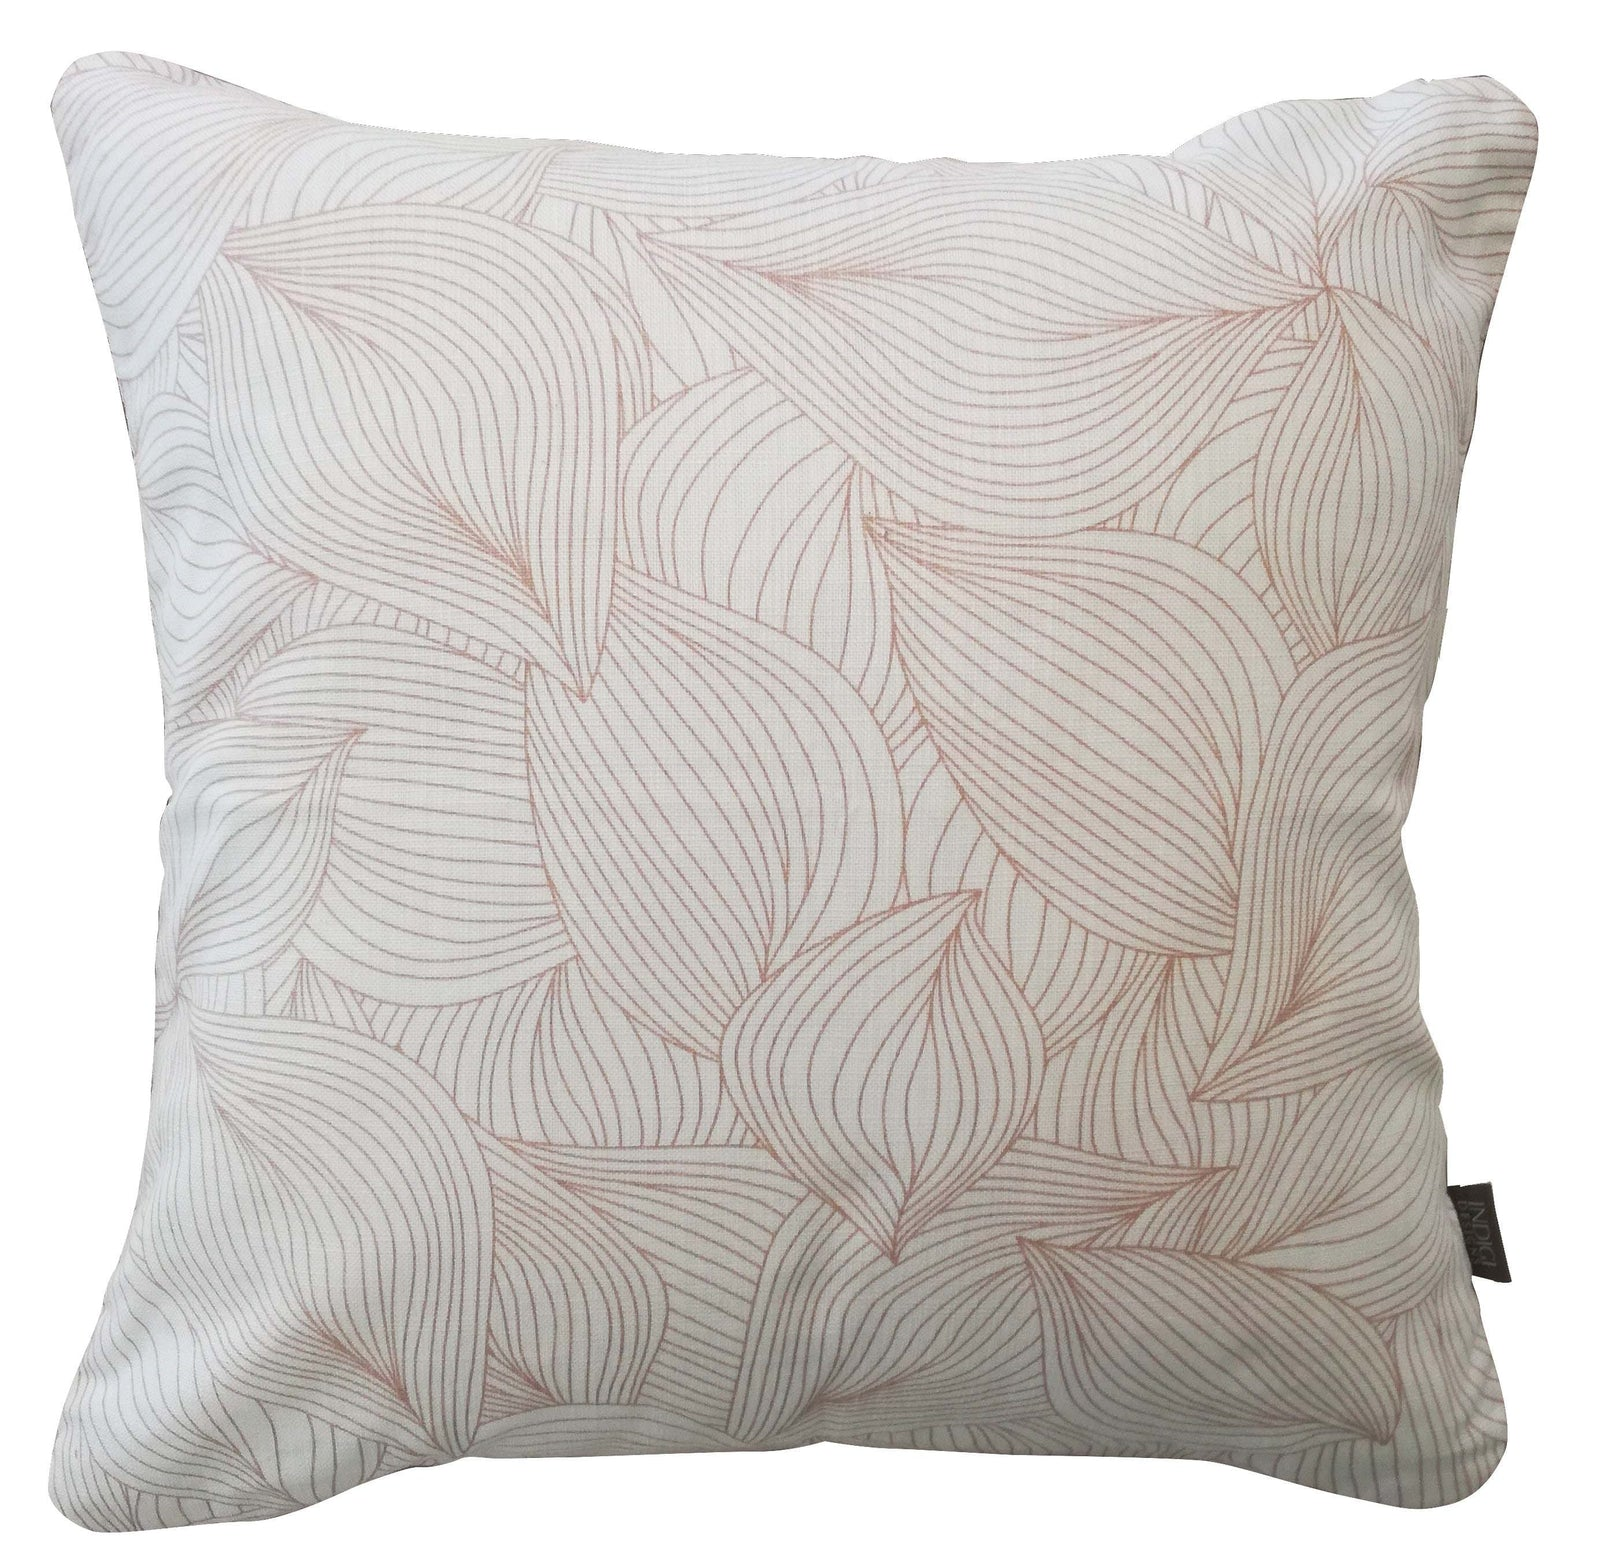 Lilium Nude Pink Cushion Cover